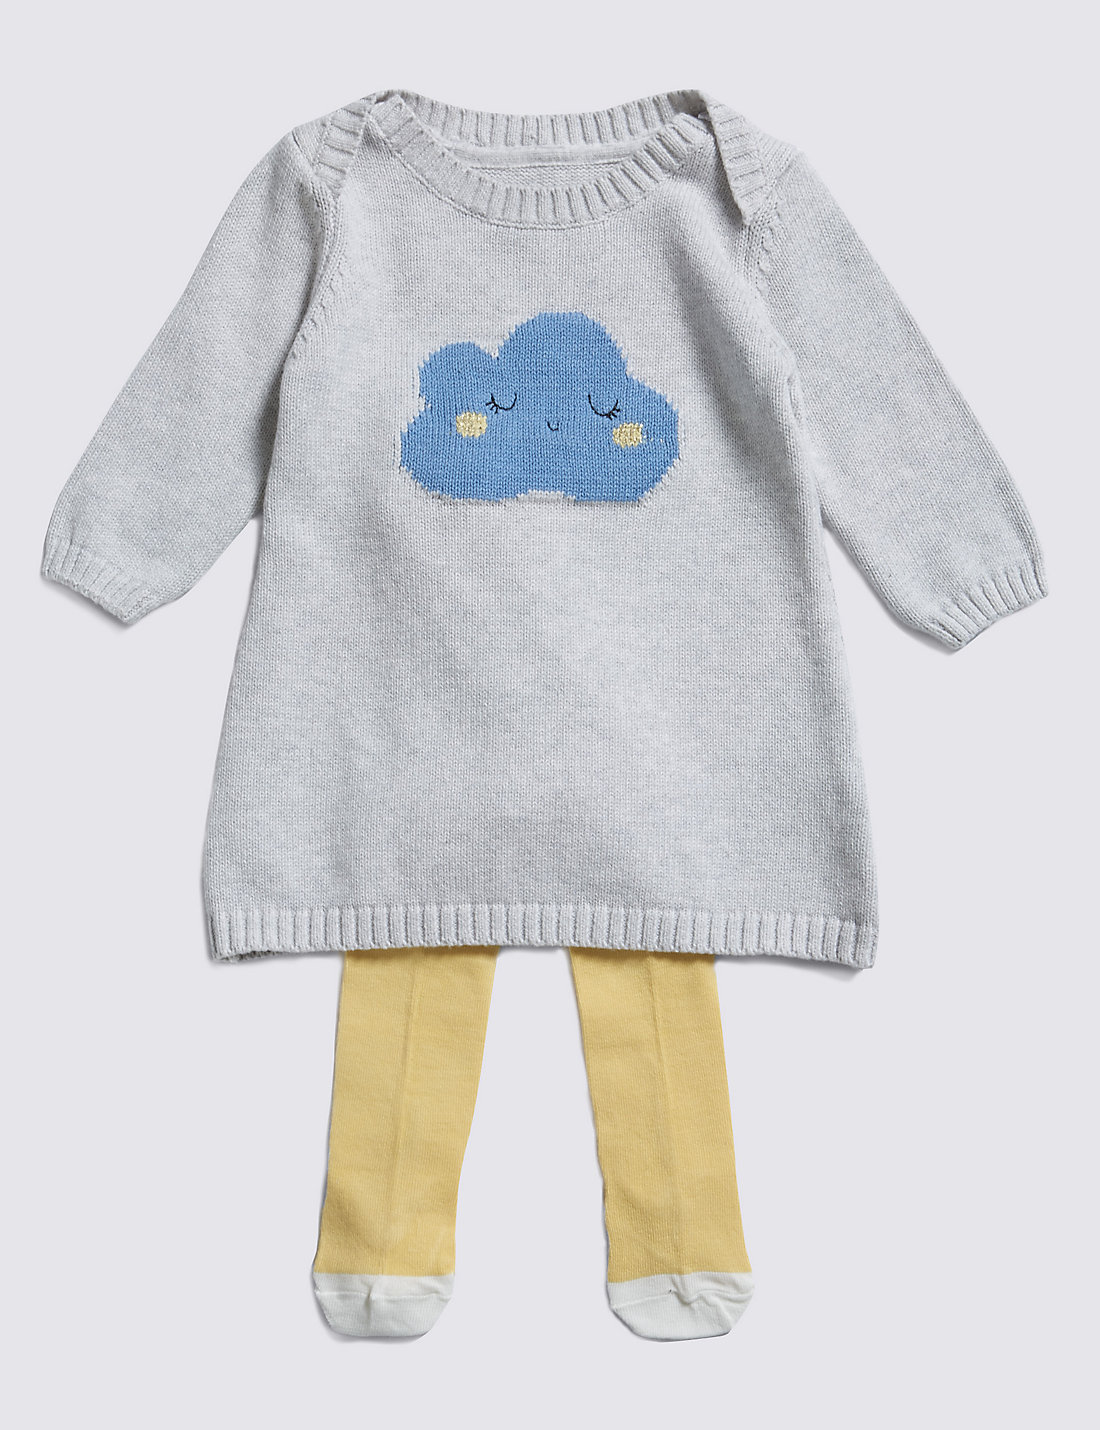 2 Piece Cotton Rich Knitted Cloud Dress & Tights Outfit